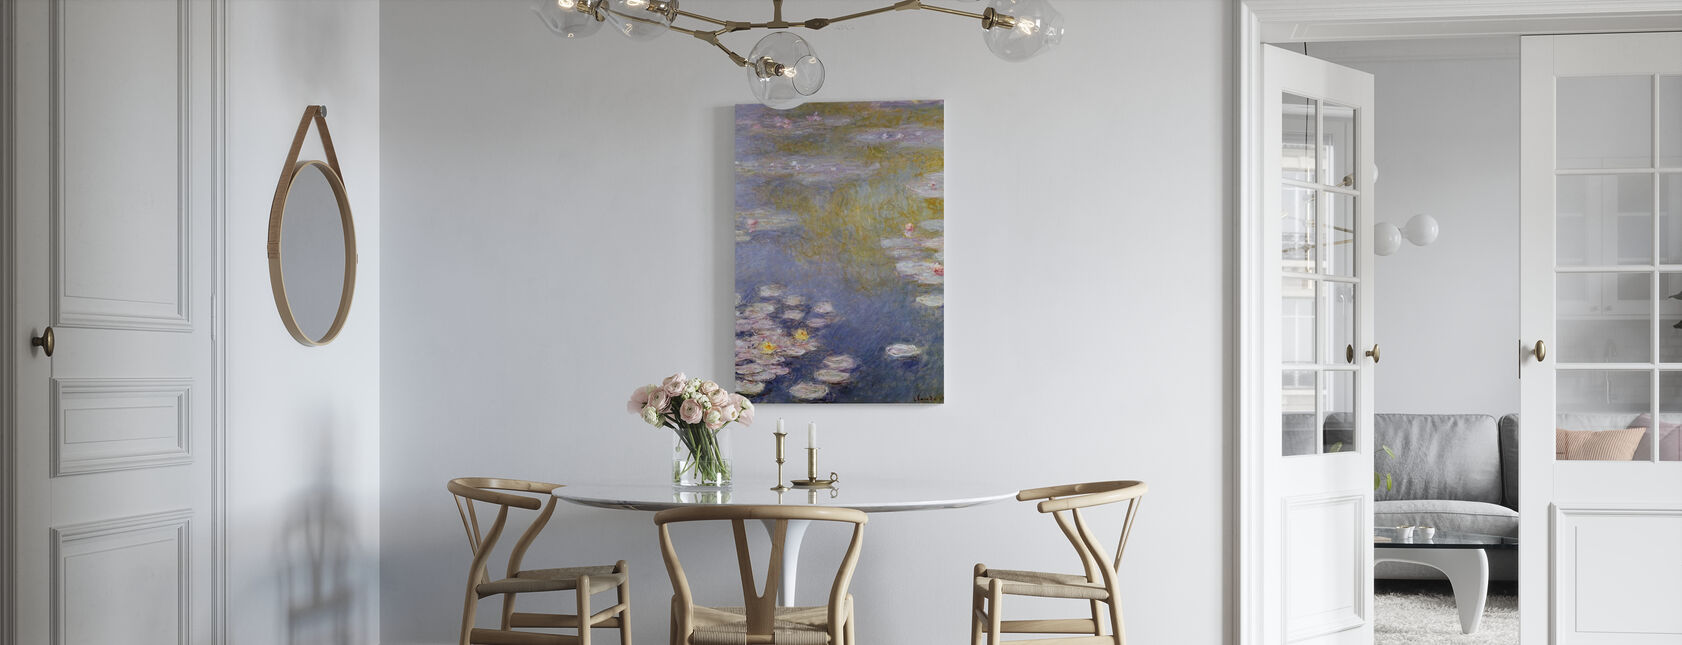 Monet, Claude - Nympheas at Giverny - Canvas print - Kitchen